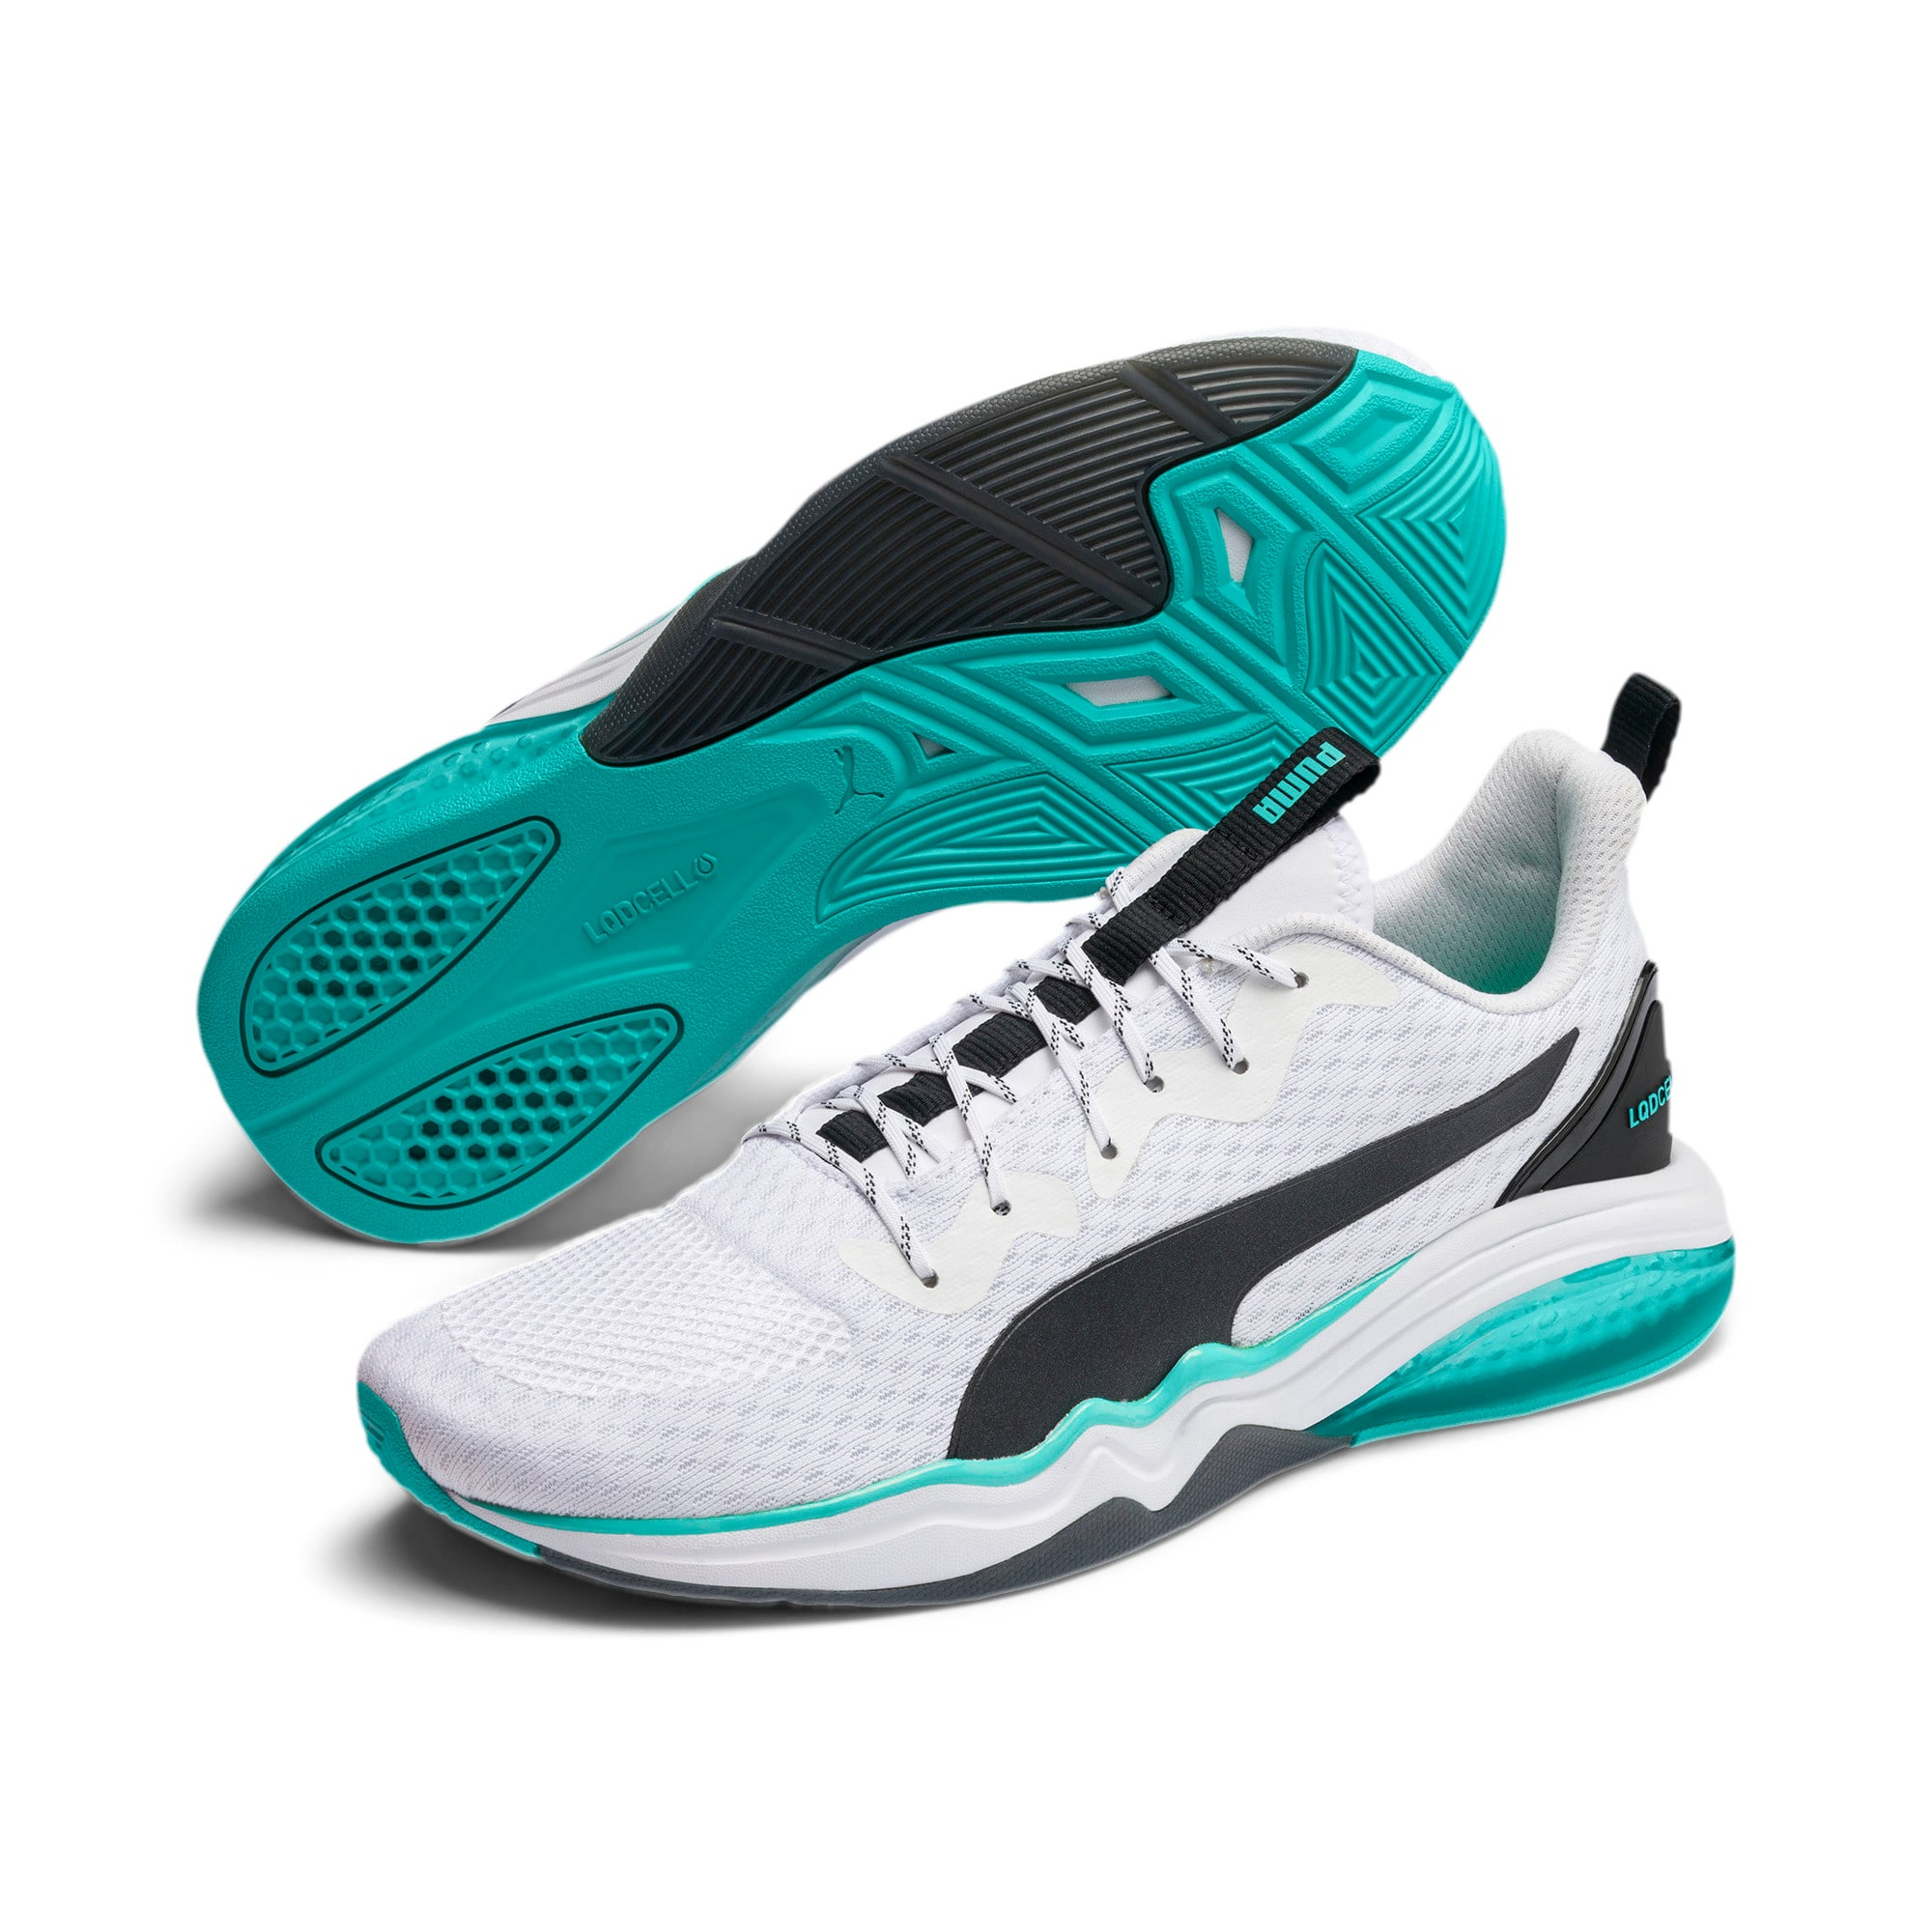 Thumbnail 3 of LQDCELL Tension Men's Training Shoes, Puma White-Blue Turquoise, medium